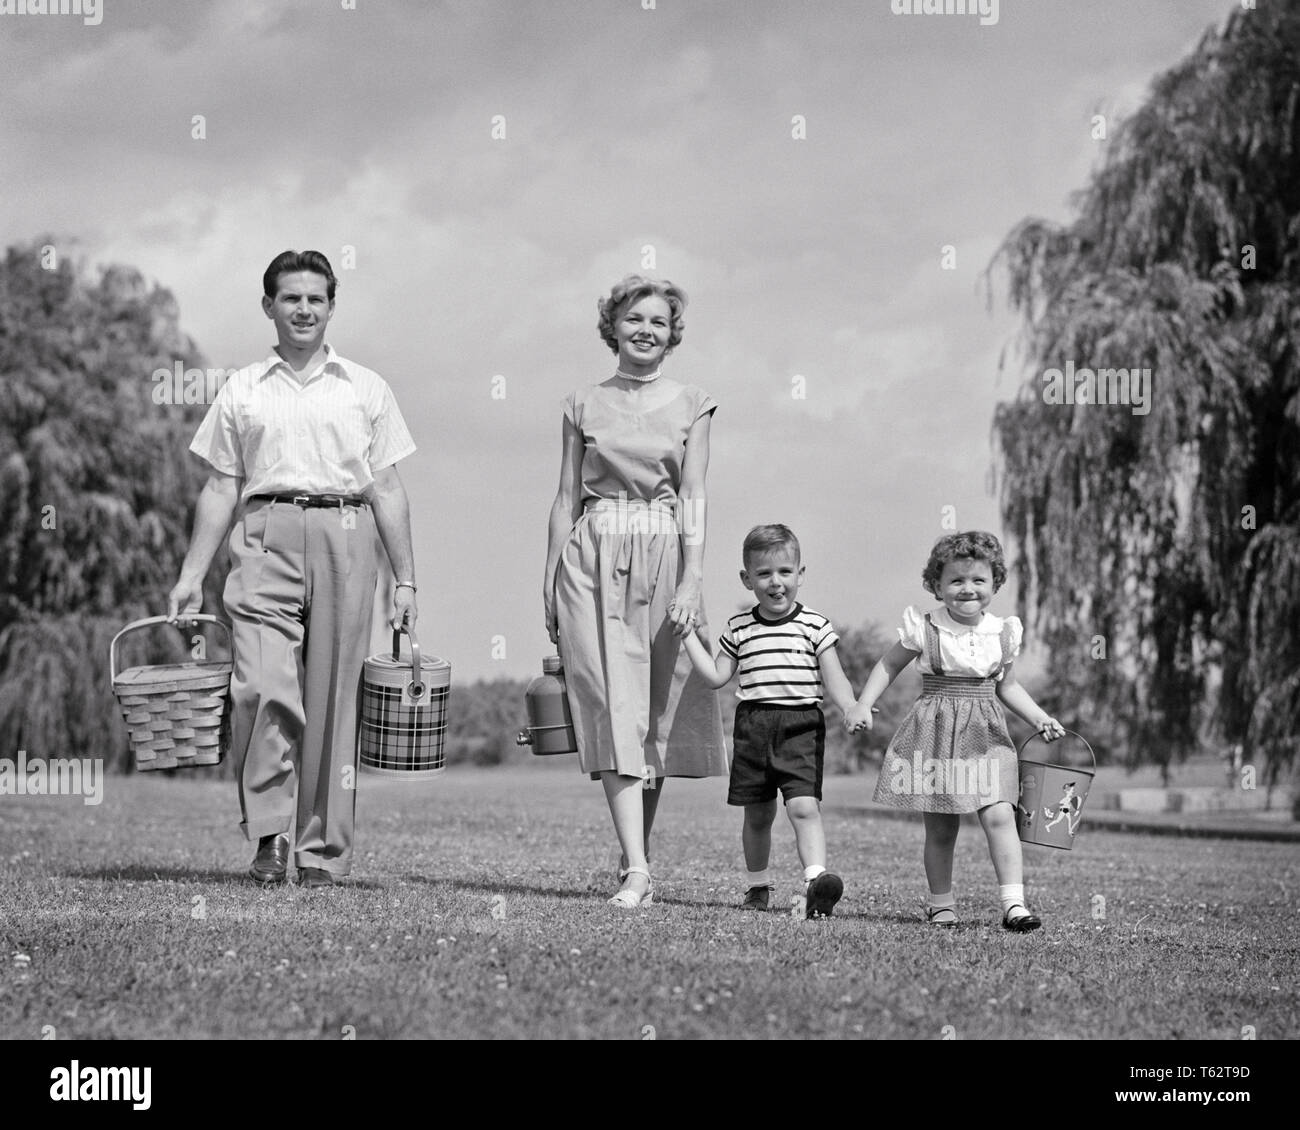 Family Life 1950 S High Resolution Stock Photography And Images Alamy